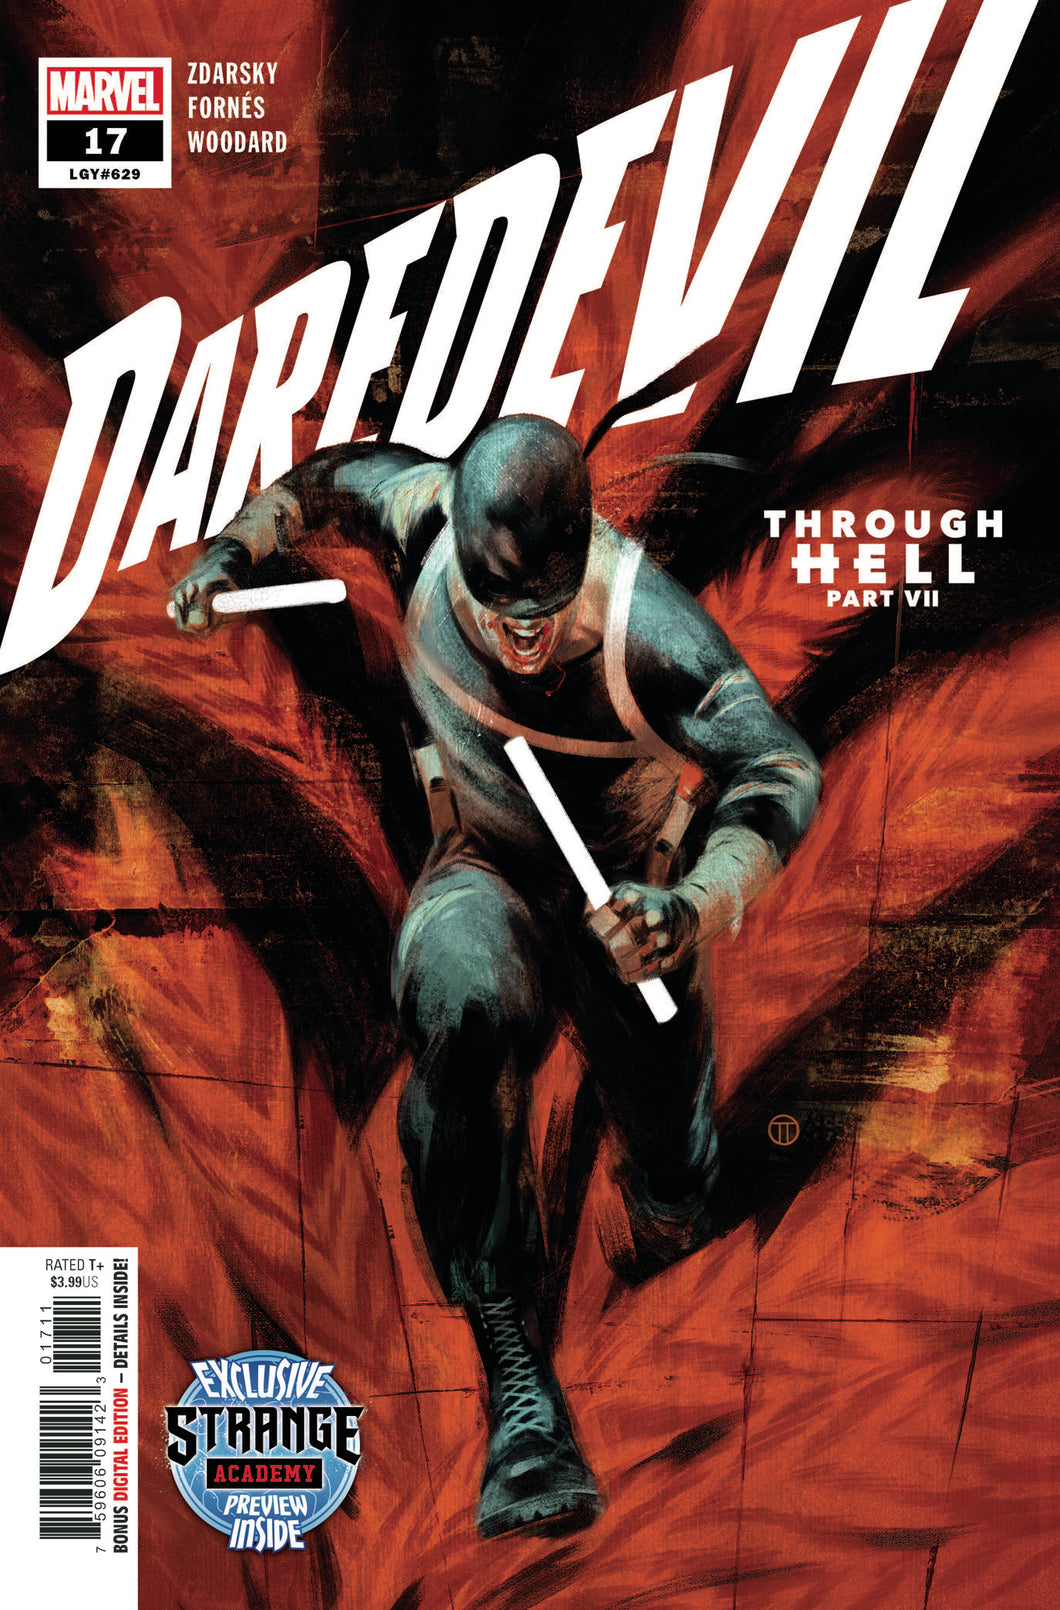 Daredevil #17 Chip Zdarsky Strange Academy Preview (2020)